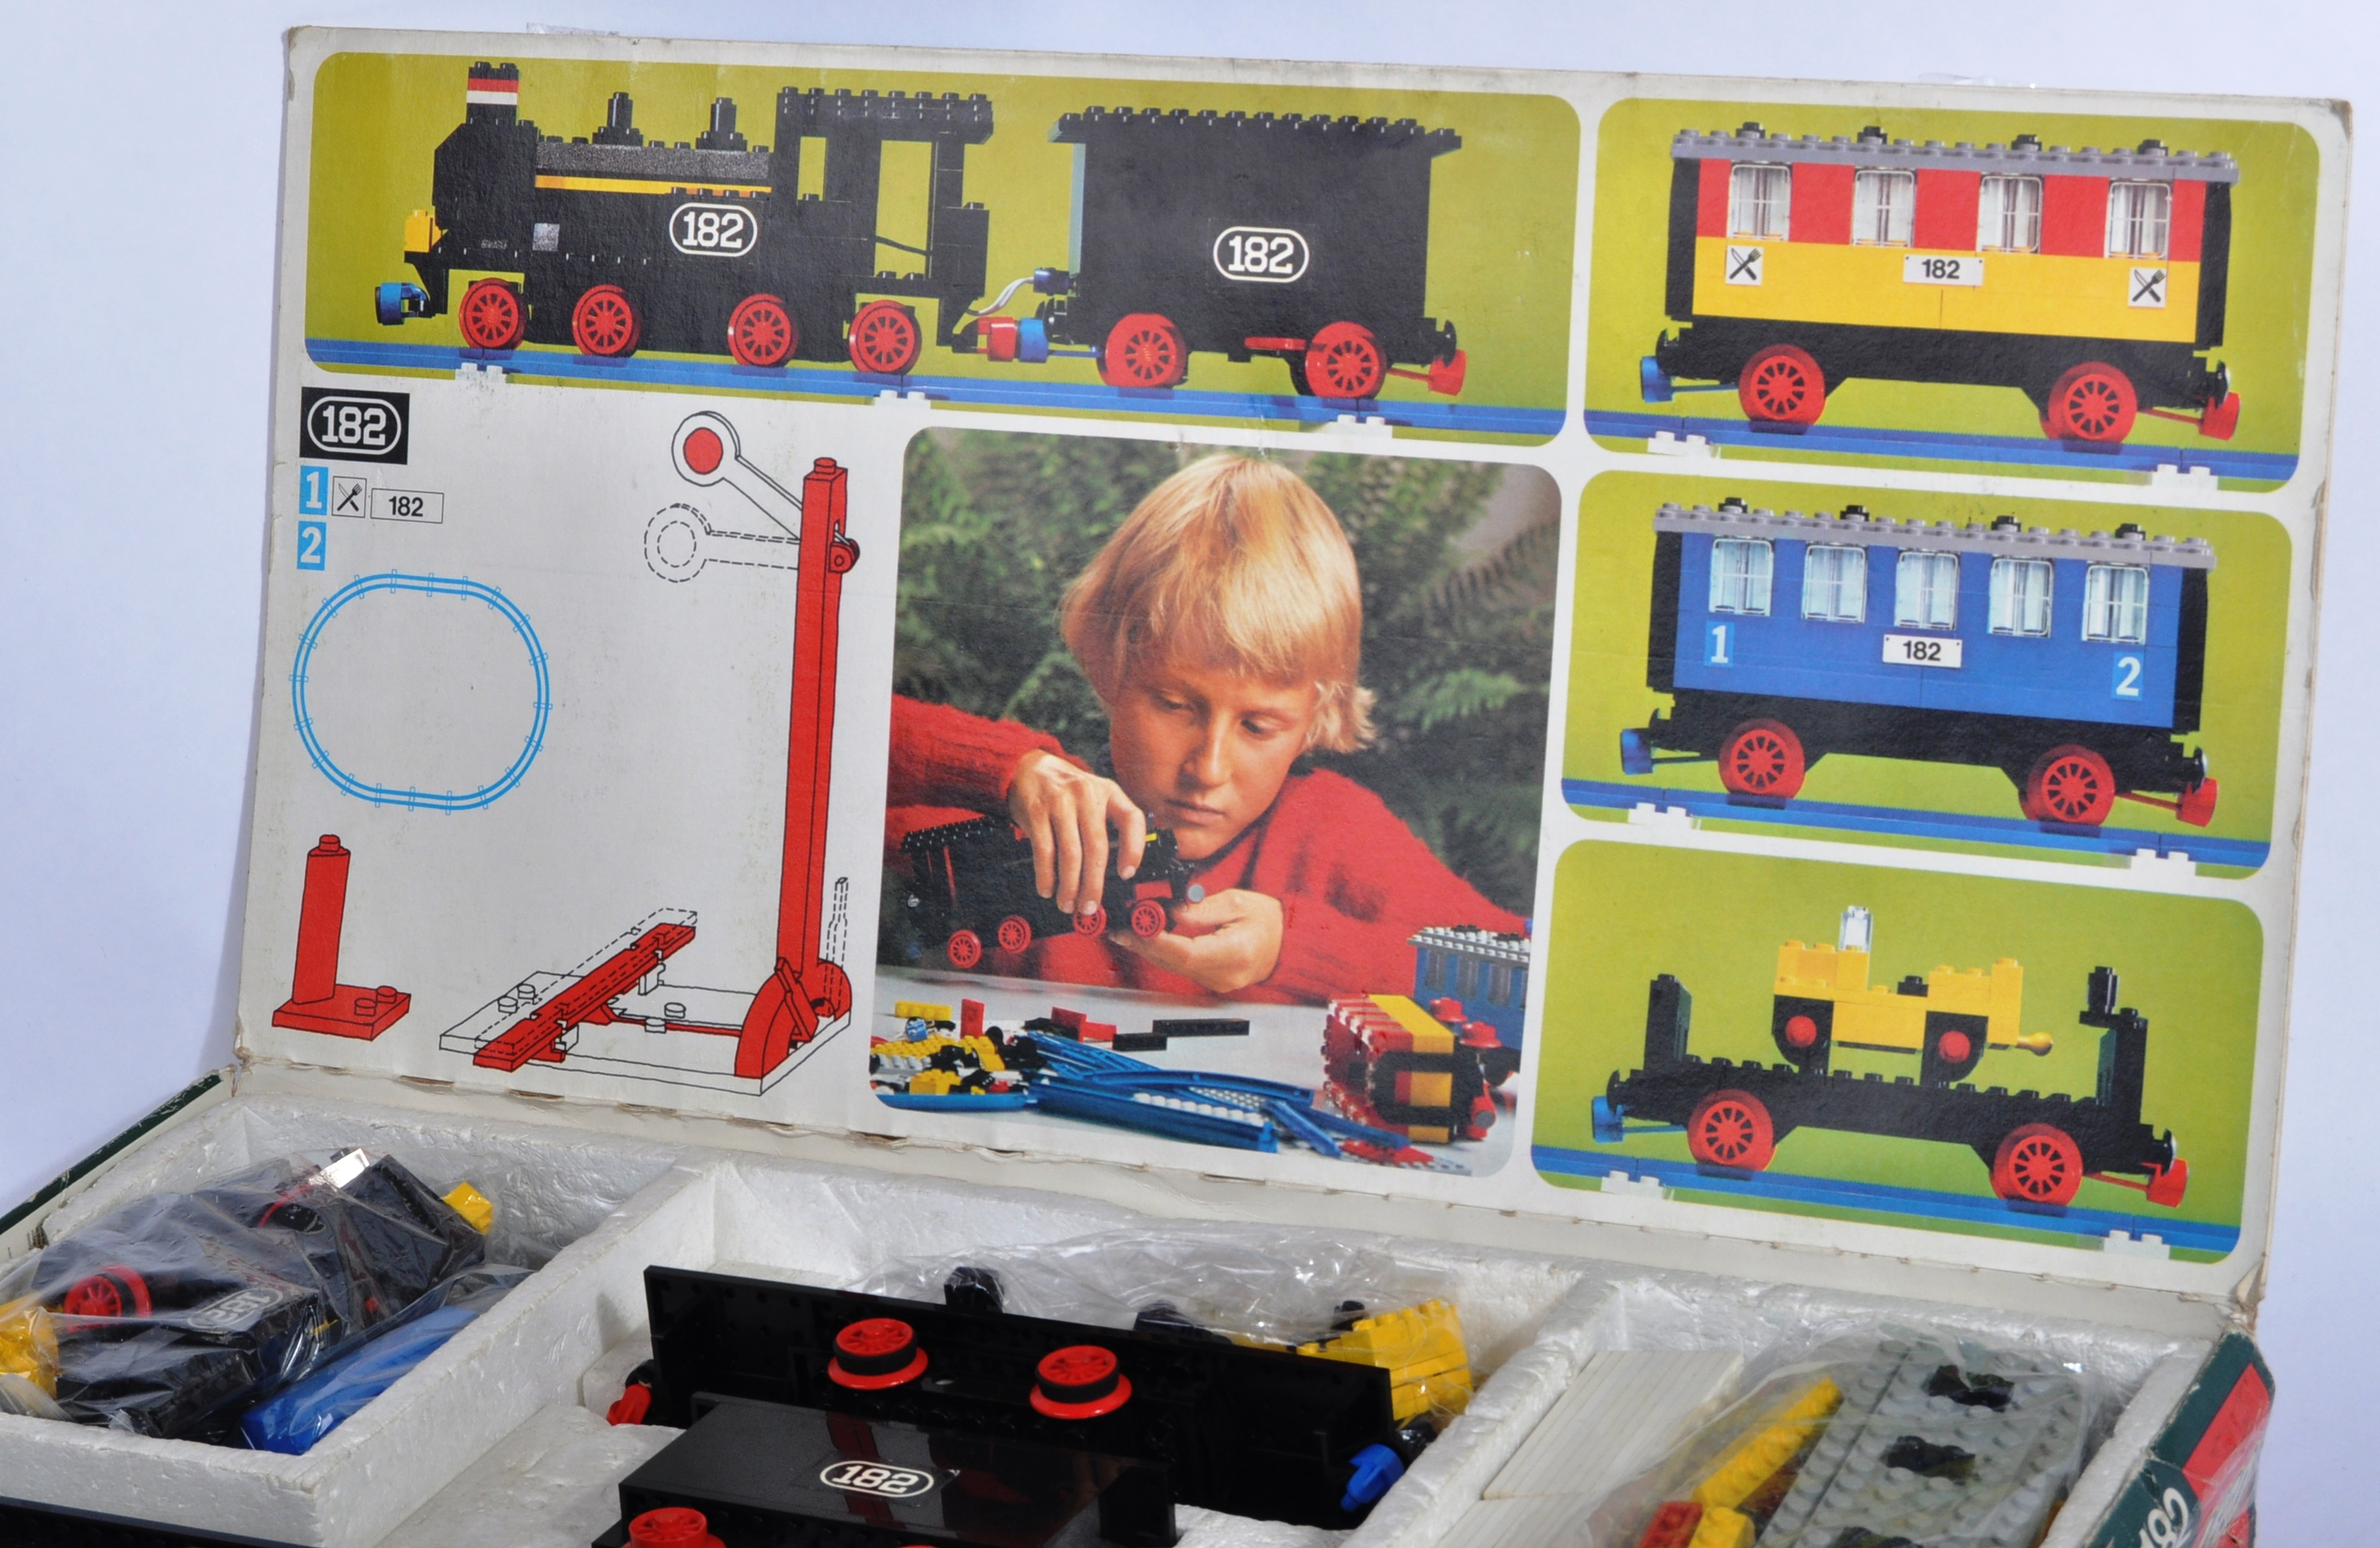 LEGO SET - 182 - TRAIN SET WITH MOTOR AND TRACK - Image 2 of 14